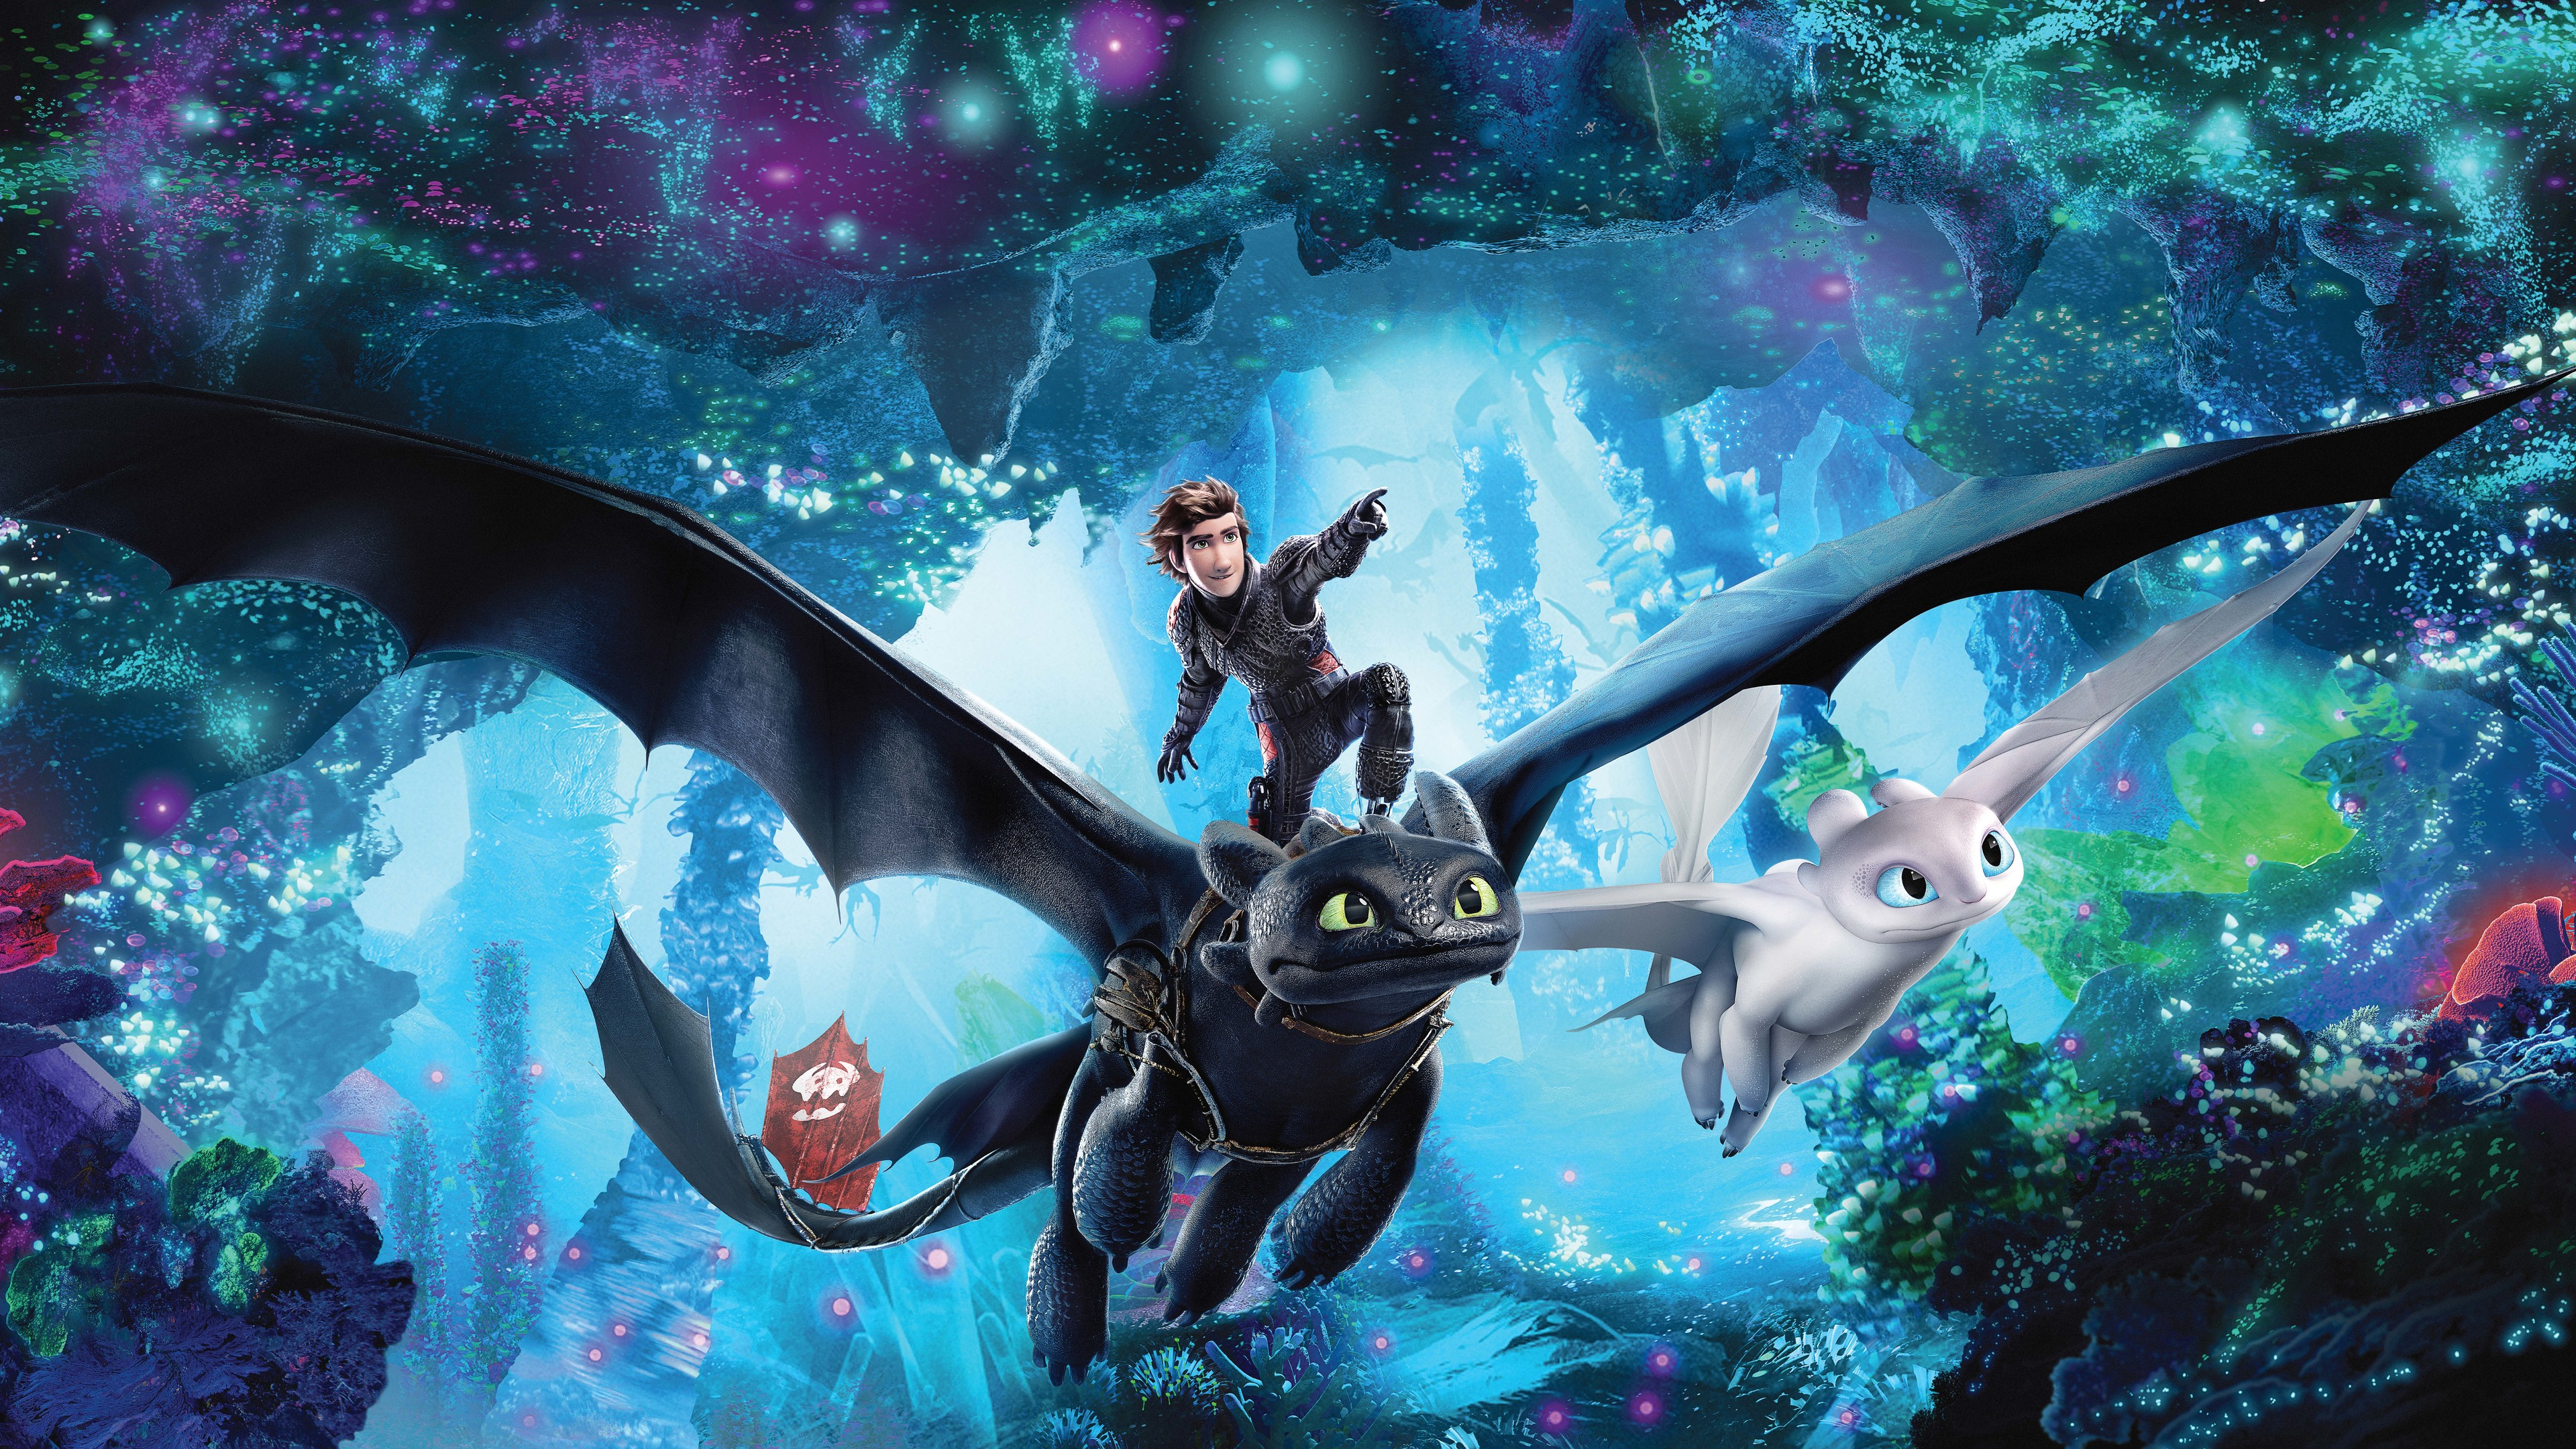 how to train your dragon the hidden world 4k poster 1543105521 - How To Train Your Dragon The Hidden World 4k Poster - movies wallpapers, how to train your dragon wallpapers, how to train your dragon the hidden world wallpapers, how to train your dragon 3 wallpapers, hd-wallpapers, animated movies wallpapers, 8k wallpapers, 5k wallpapers, 4k-wallpapers, 2019 movies wallpapers, 12k wallpapers, 10k wallpapers